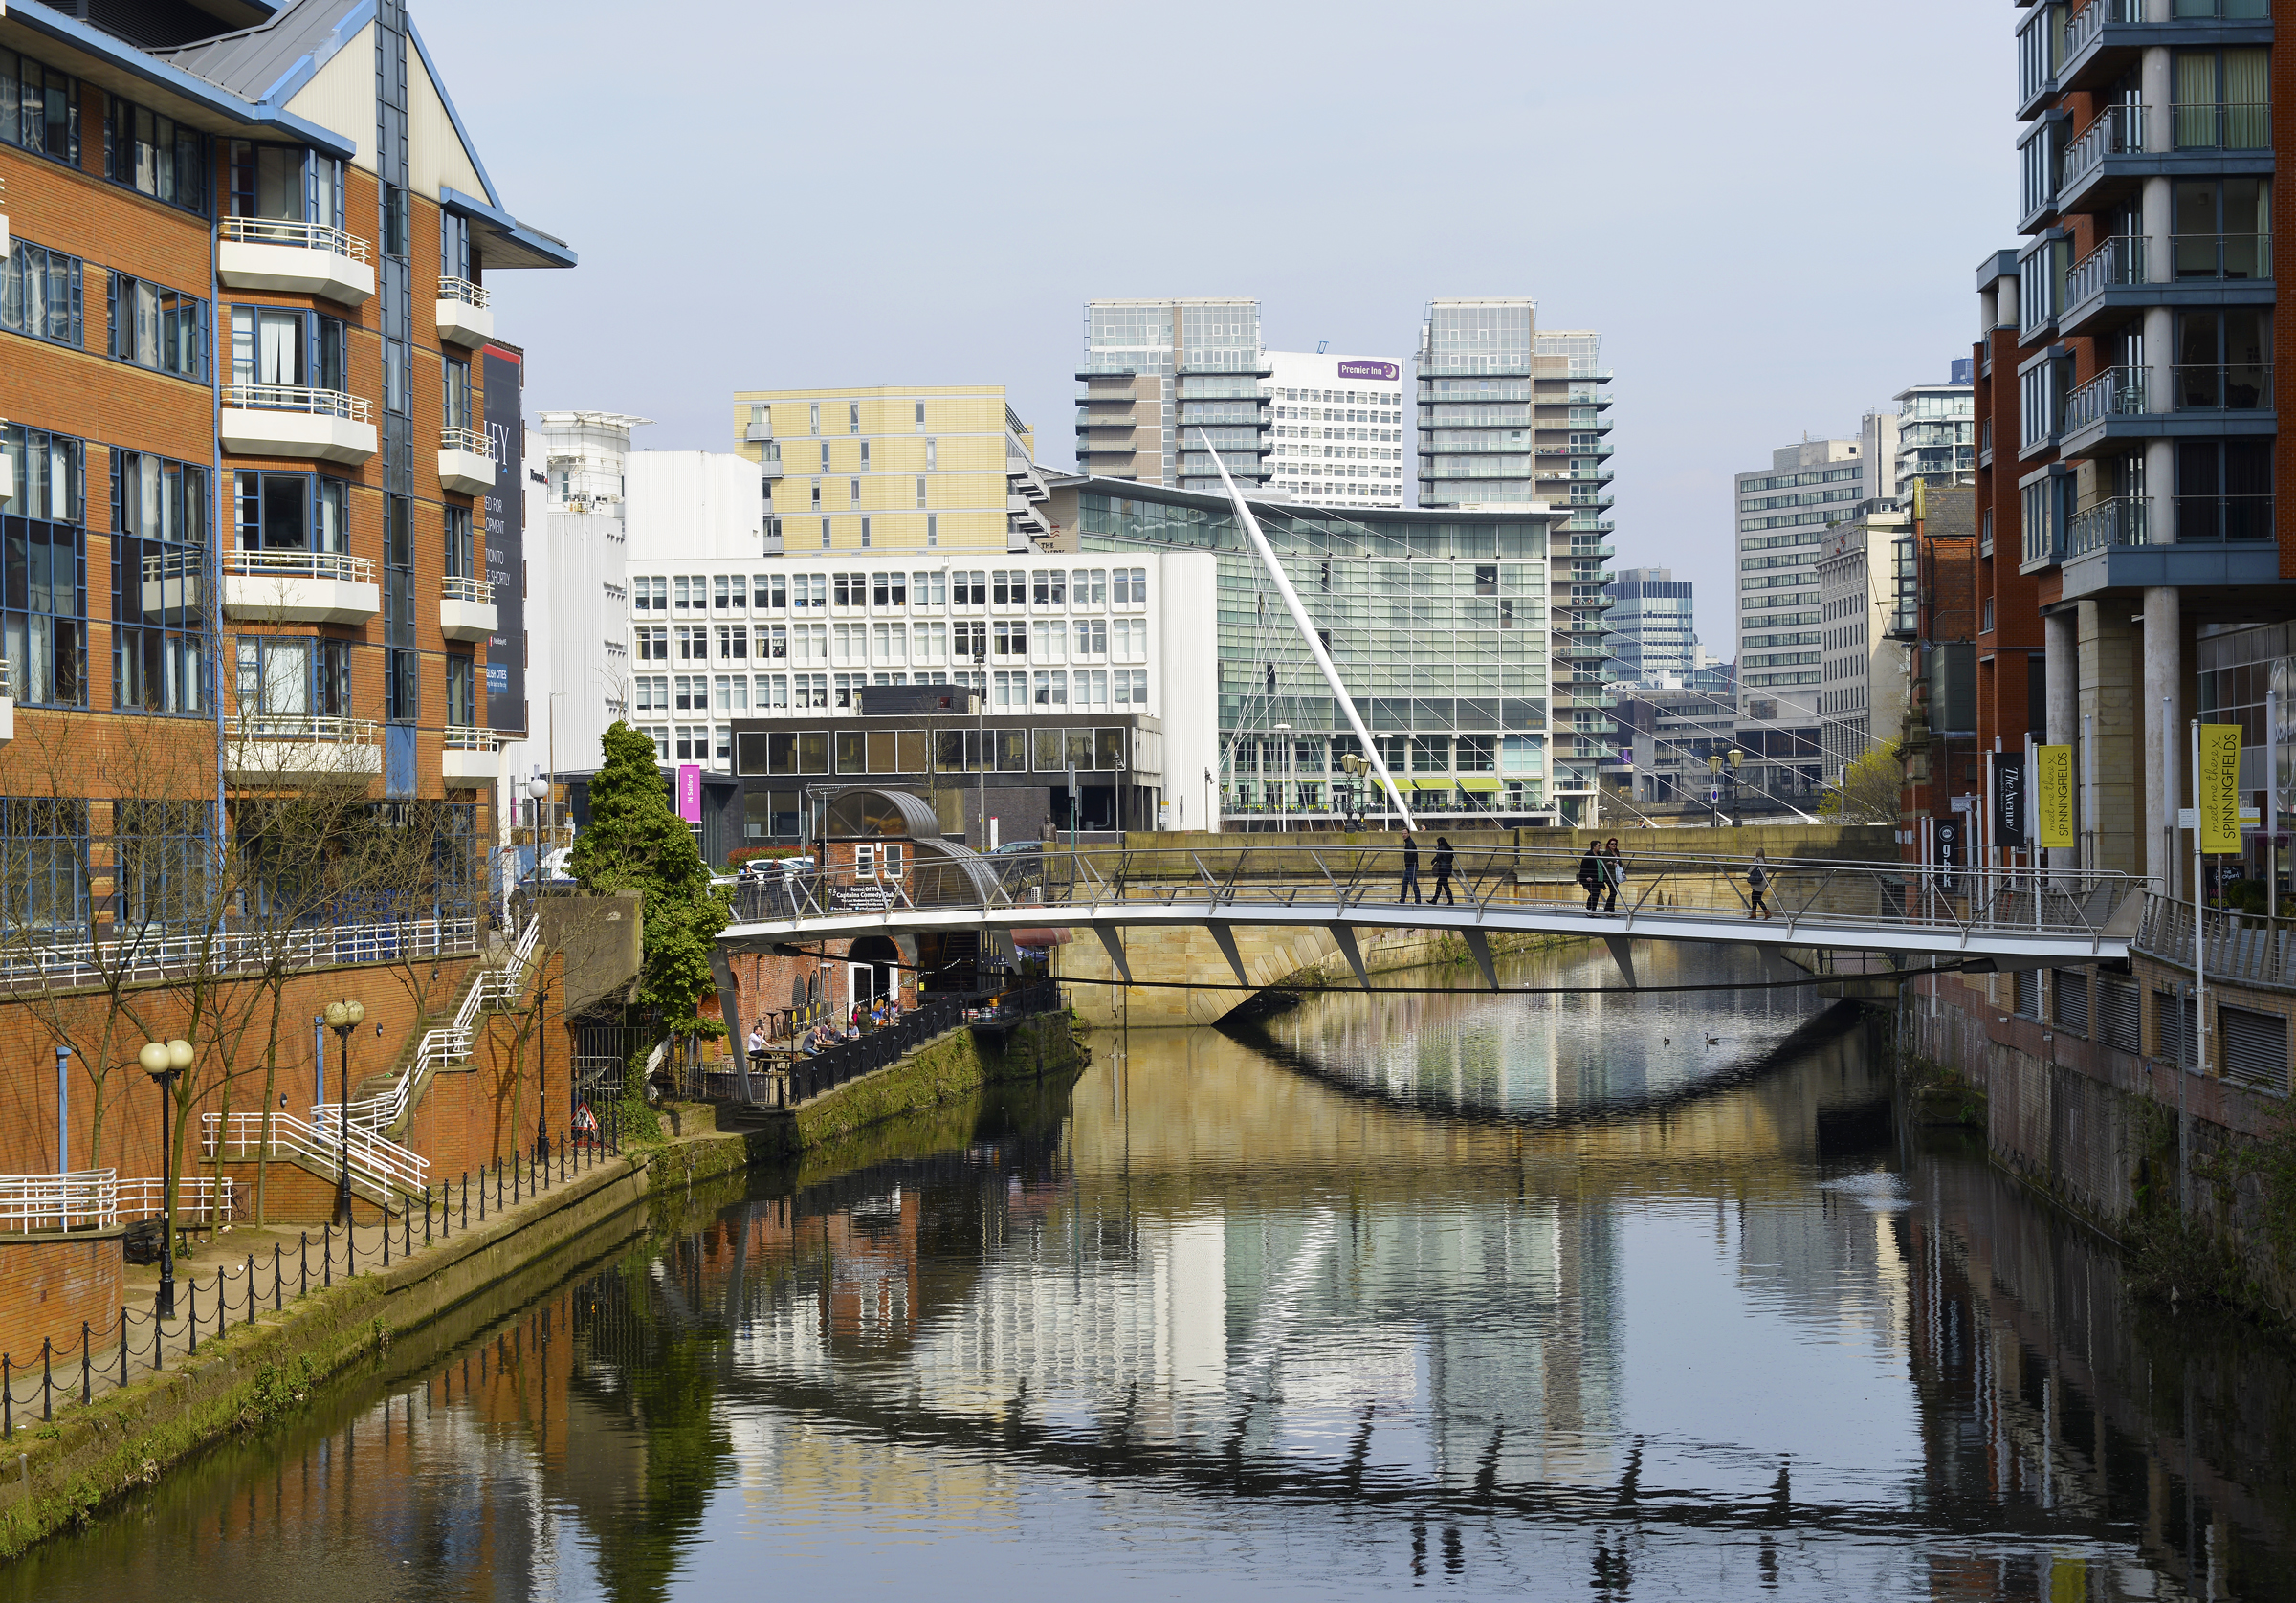 River Irwell Developments